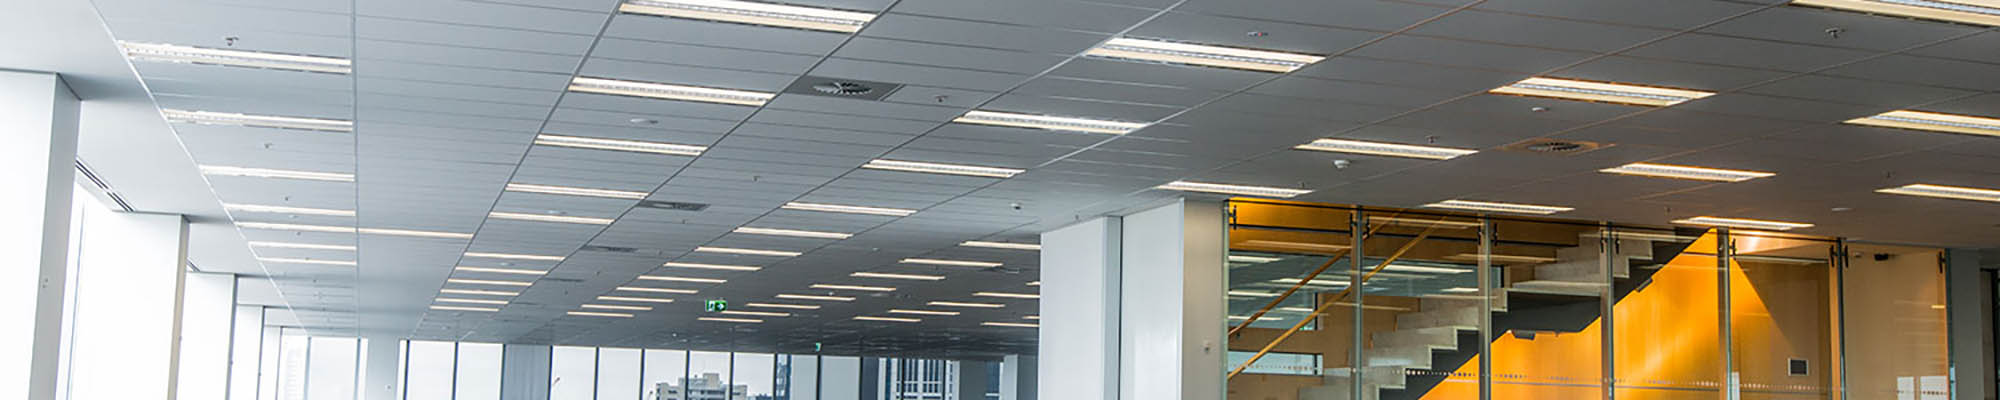 Melbourne building supplies amf thermatex ceiling panels amf thermatex ceiling panels dailygadgetfo Choice Image